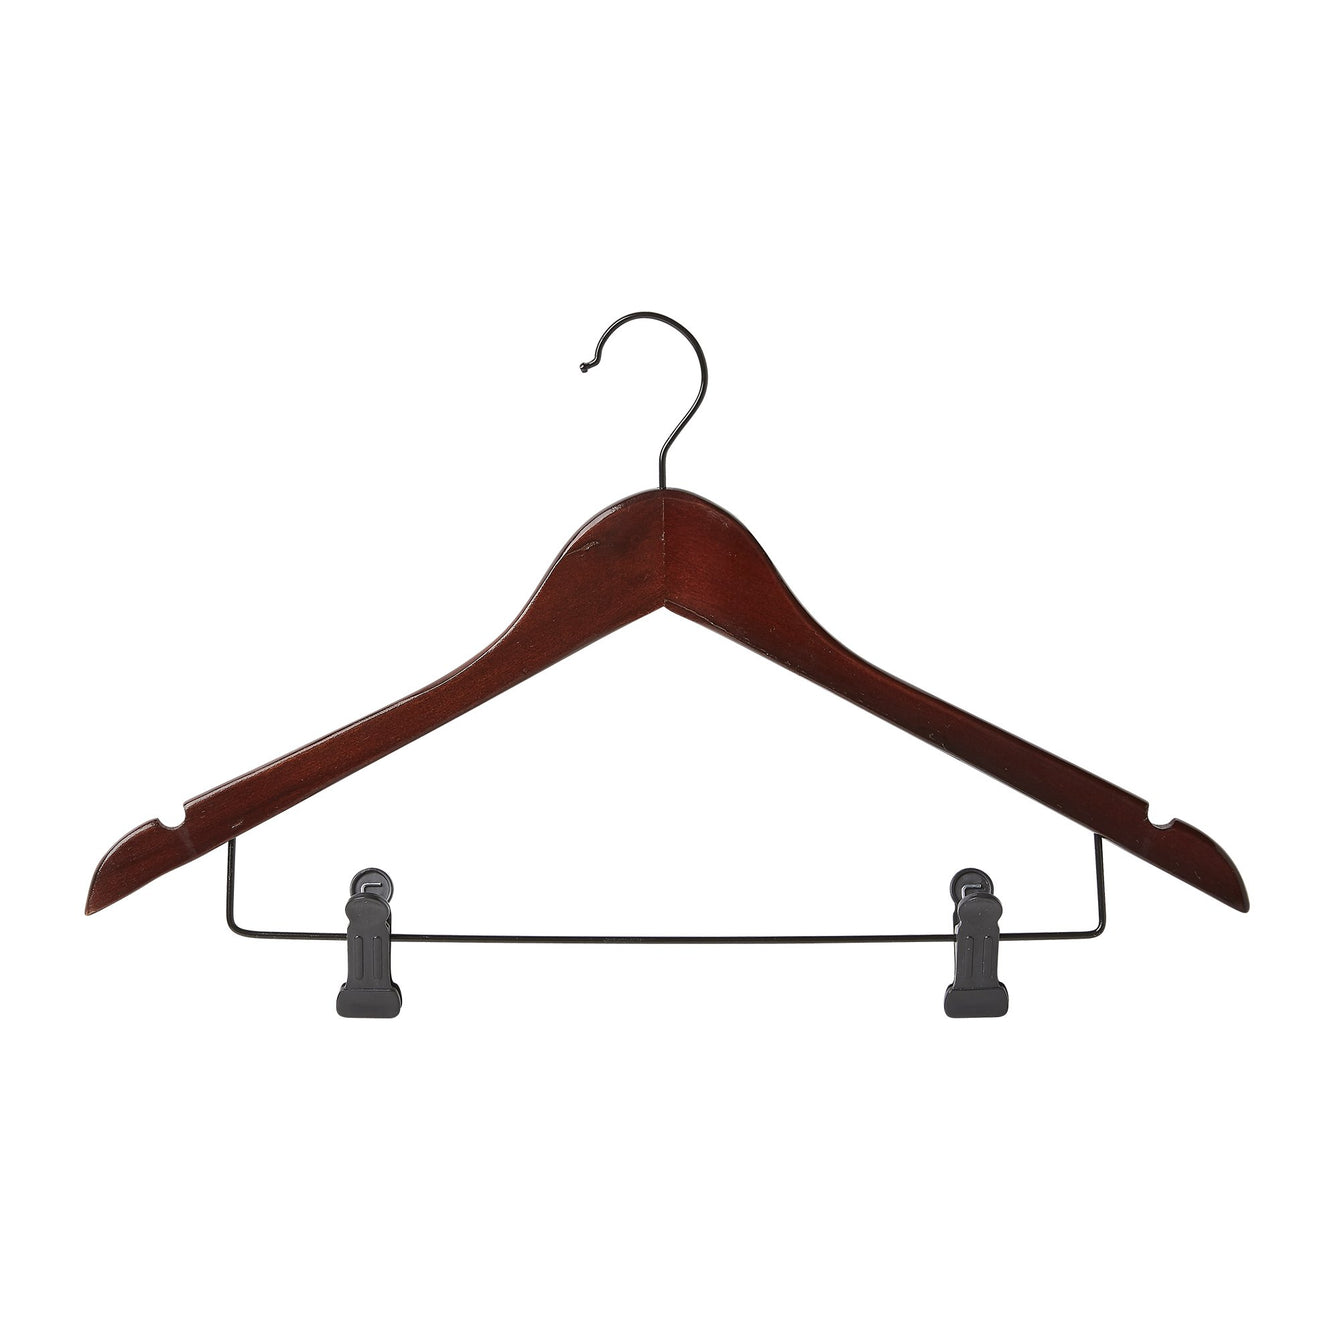 3 Pack Wood Contoured Profile Suit Hanger with Skirt Clips - Style 4095W